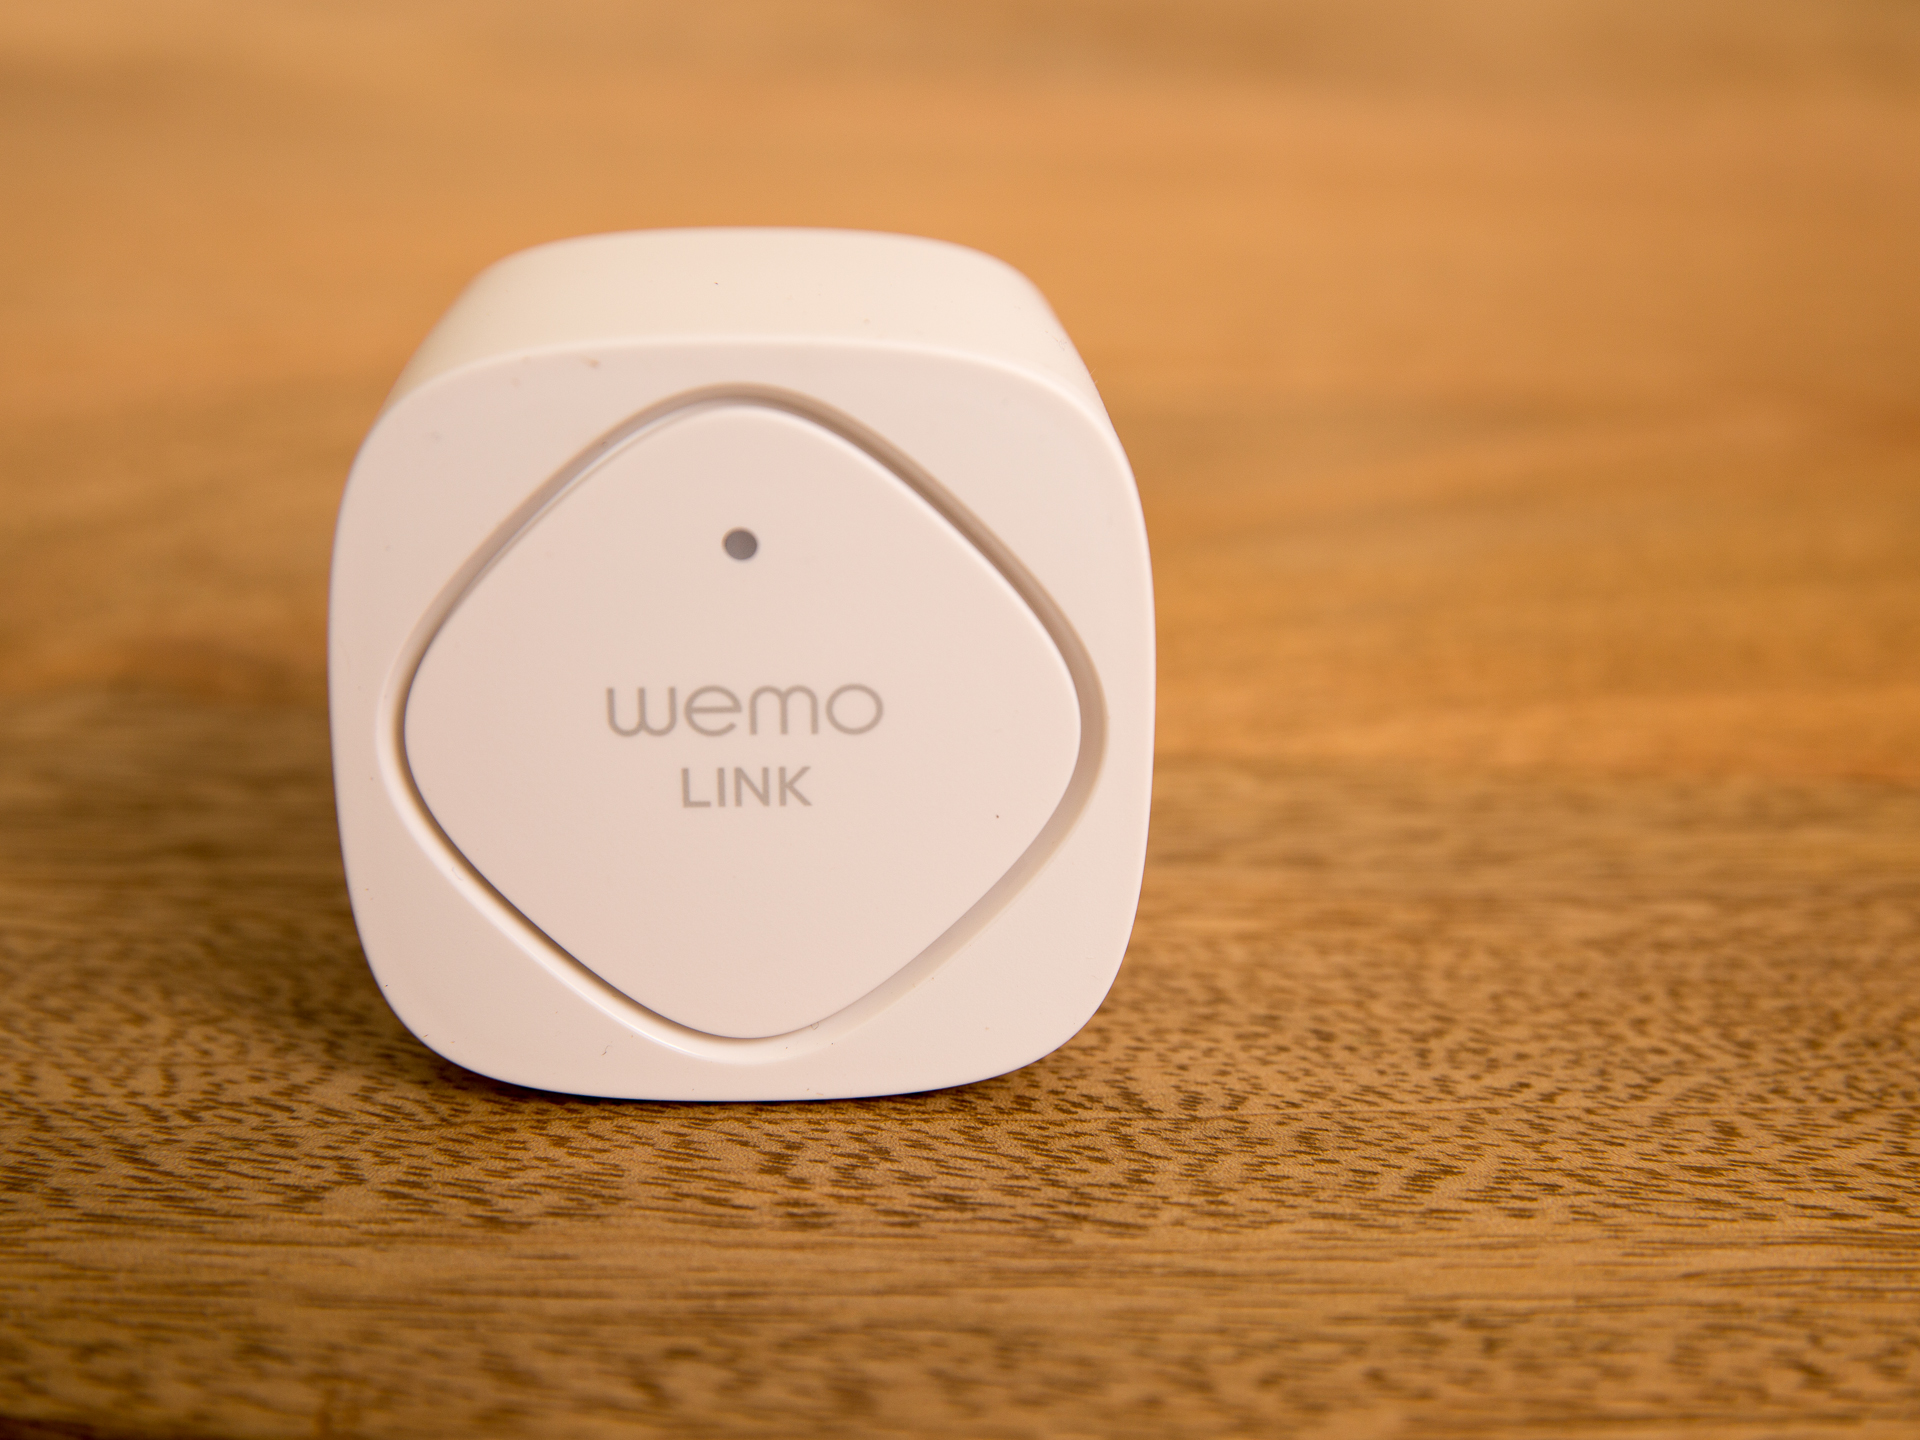 The WeMo Link